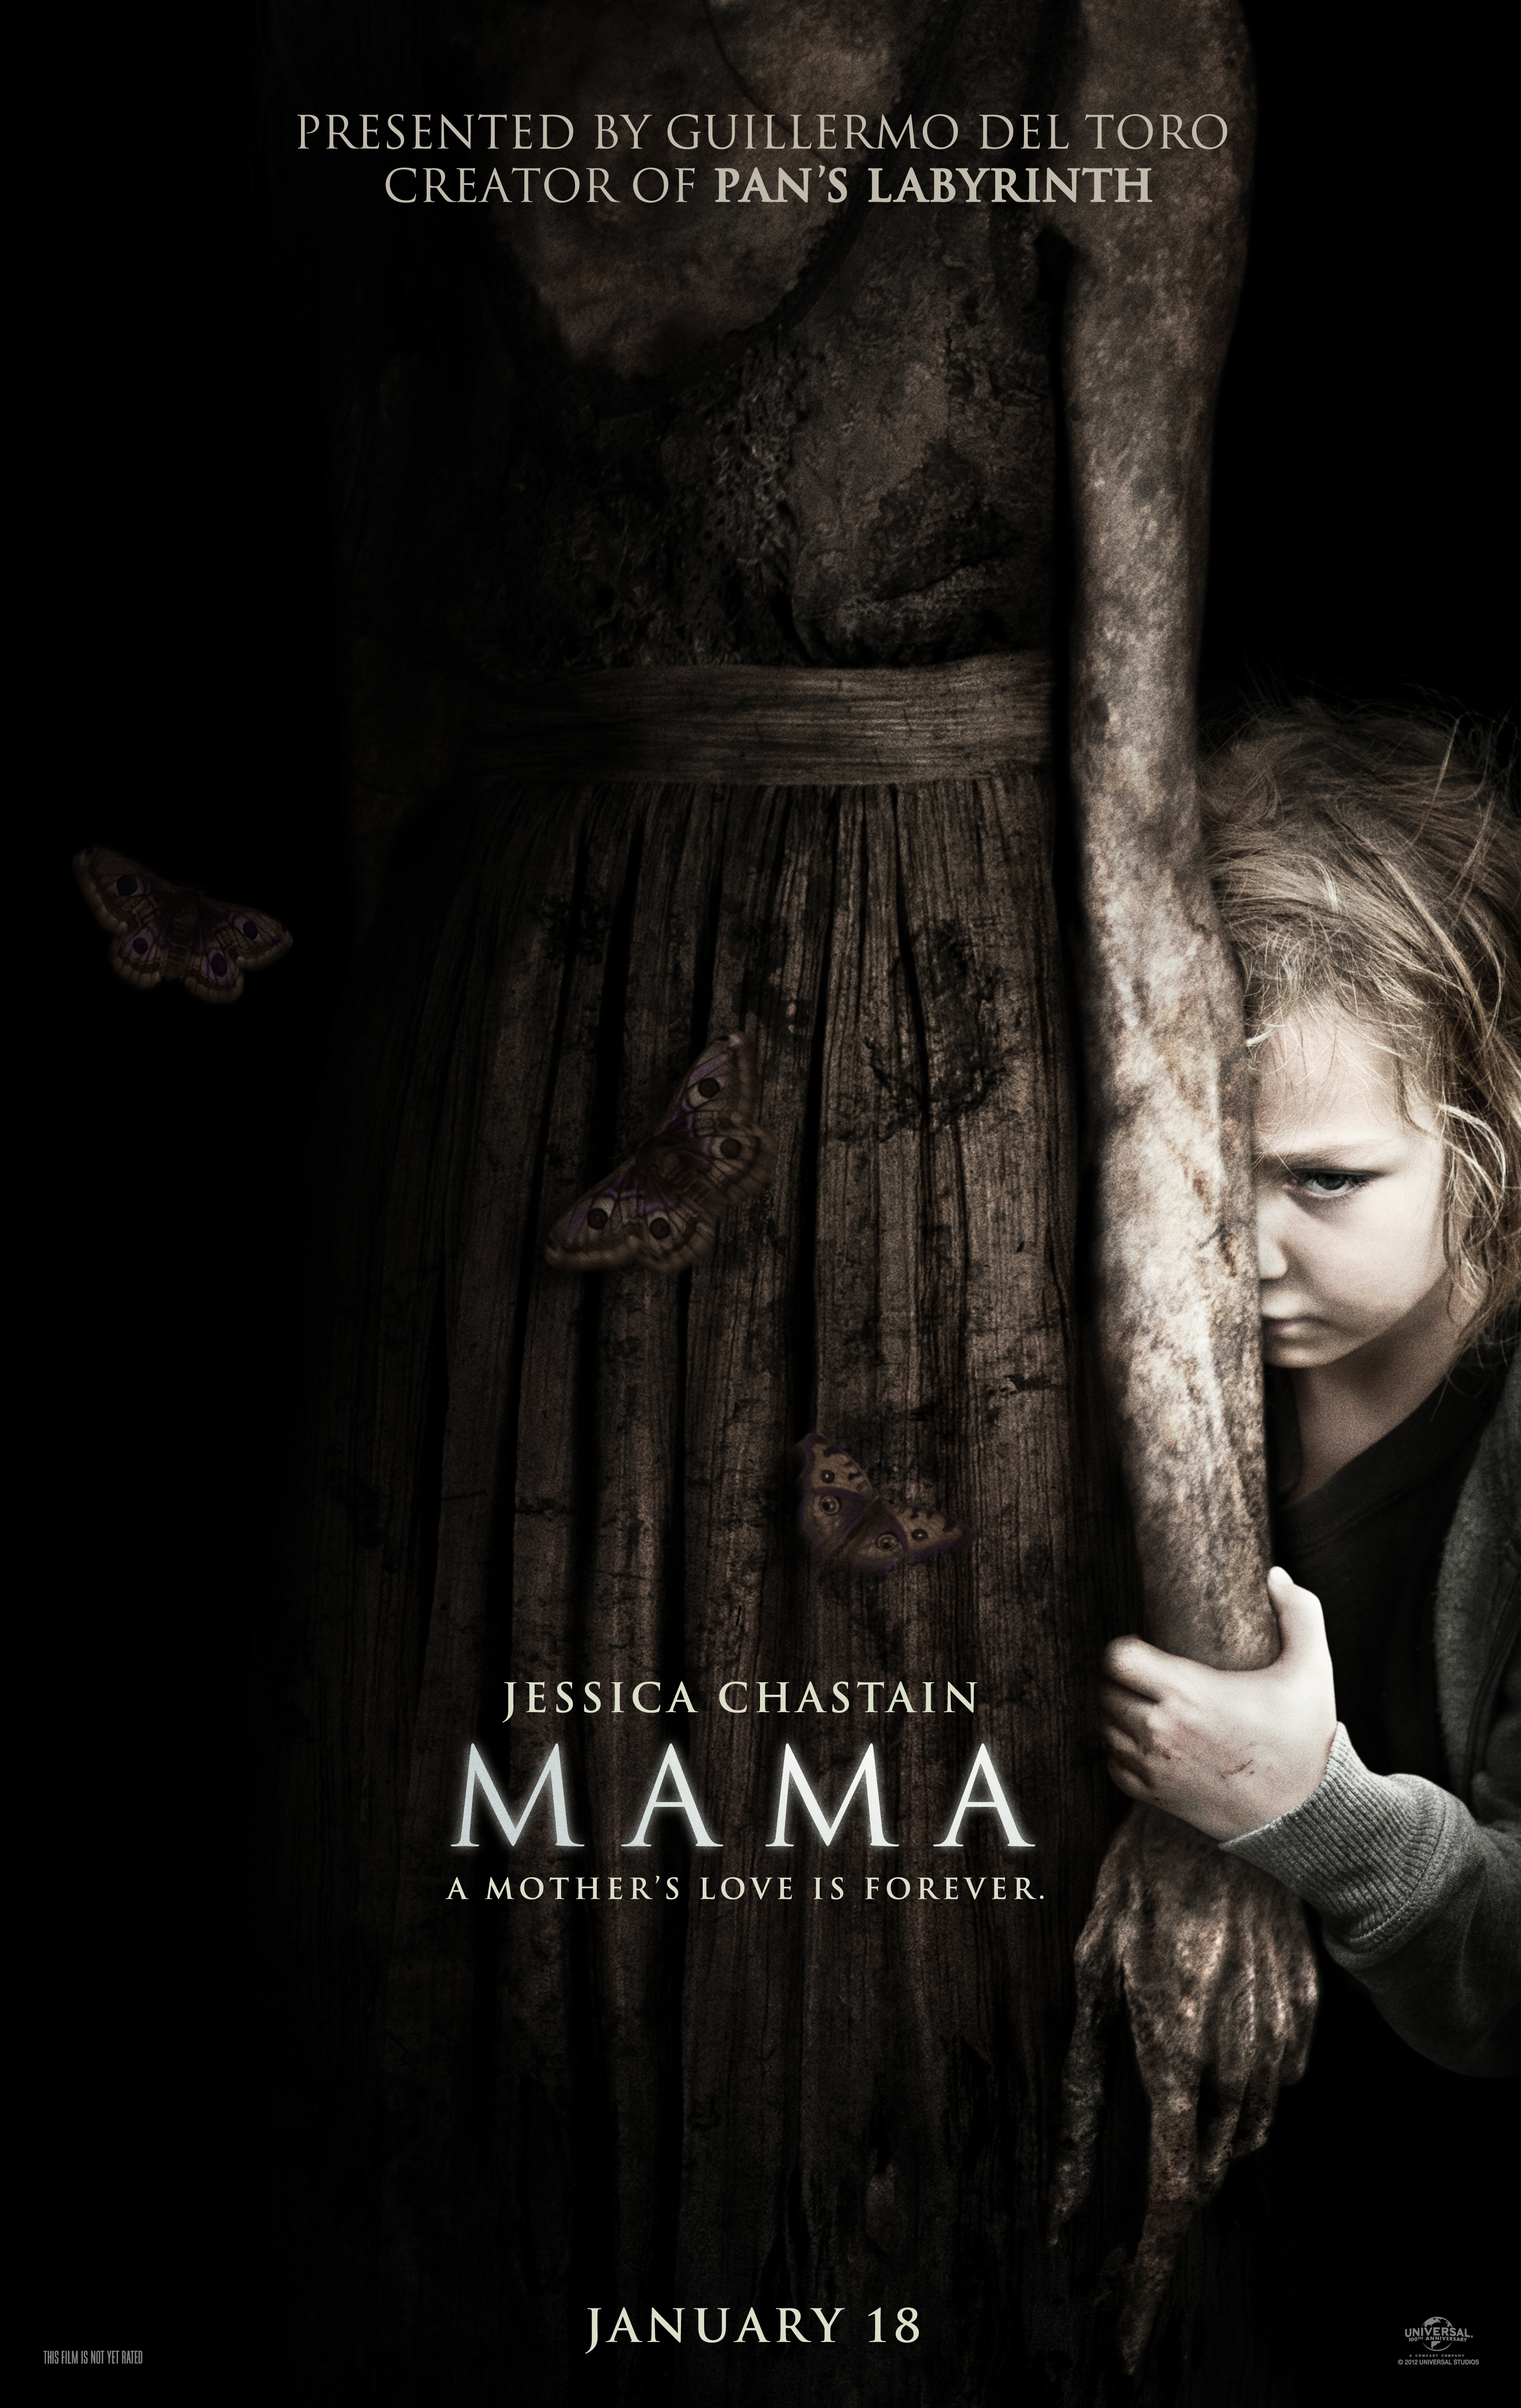 MAMA the movie